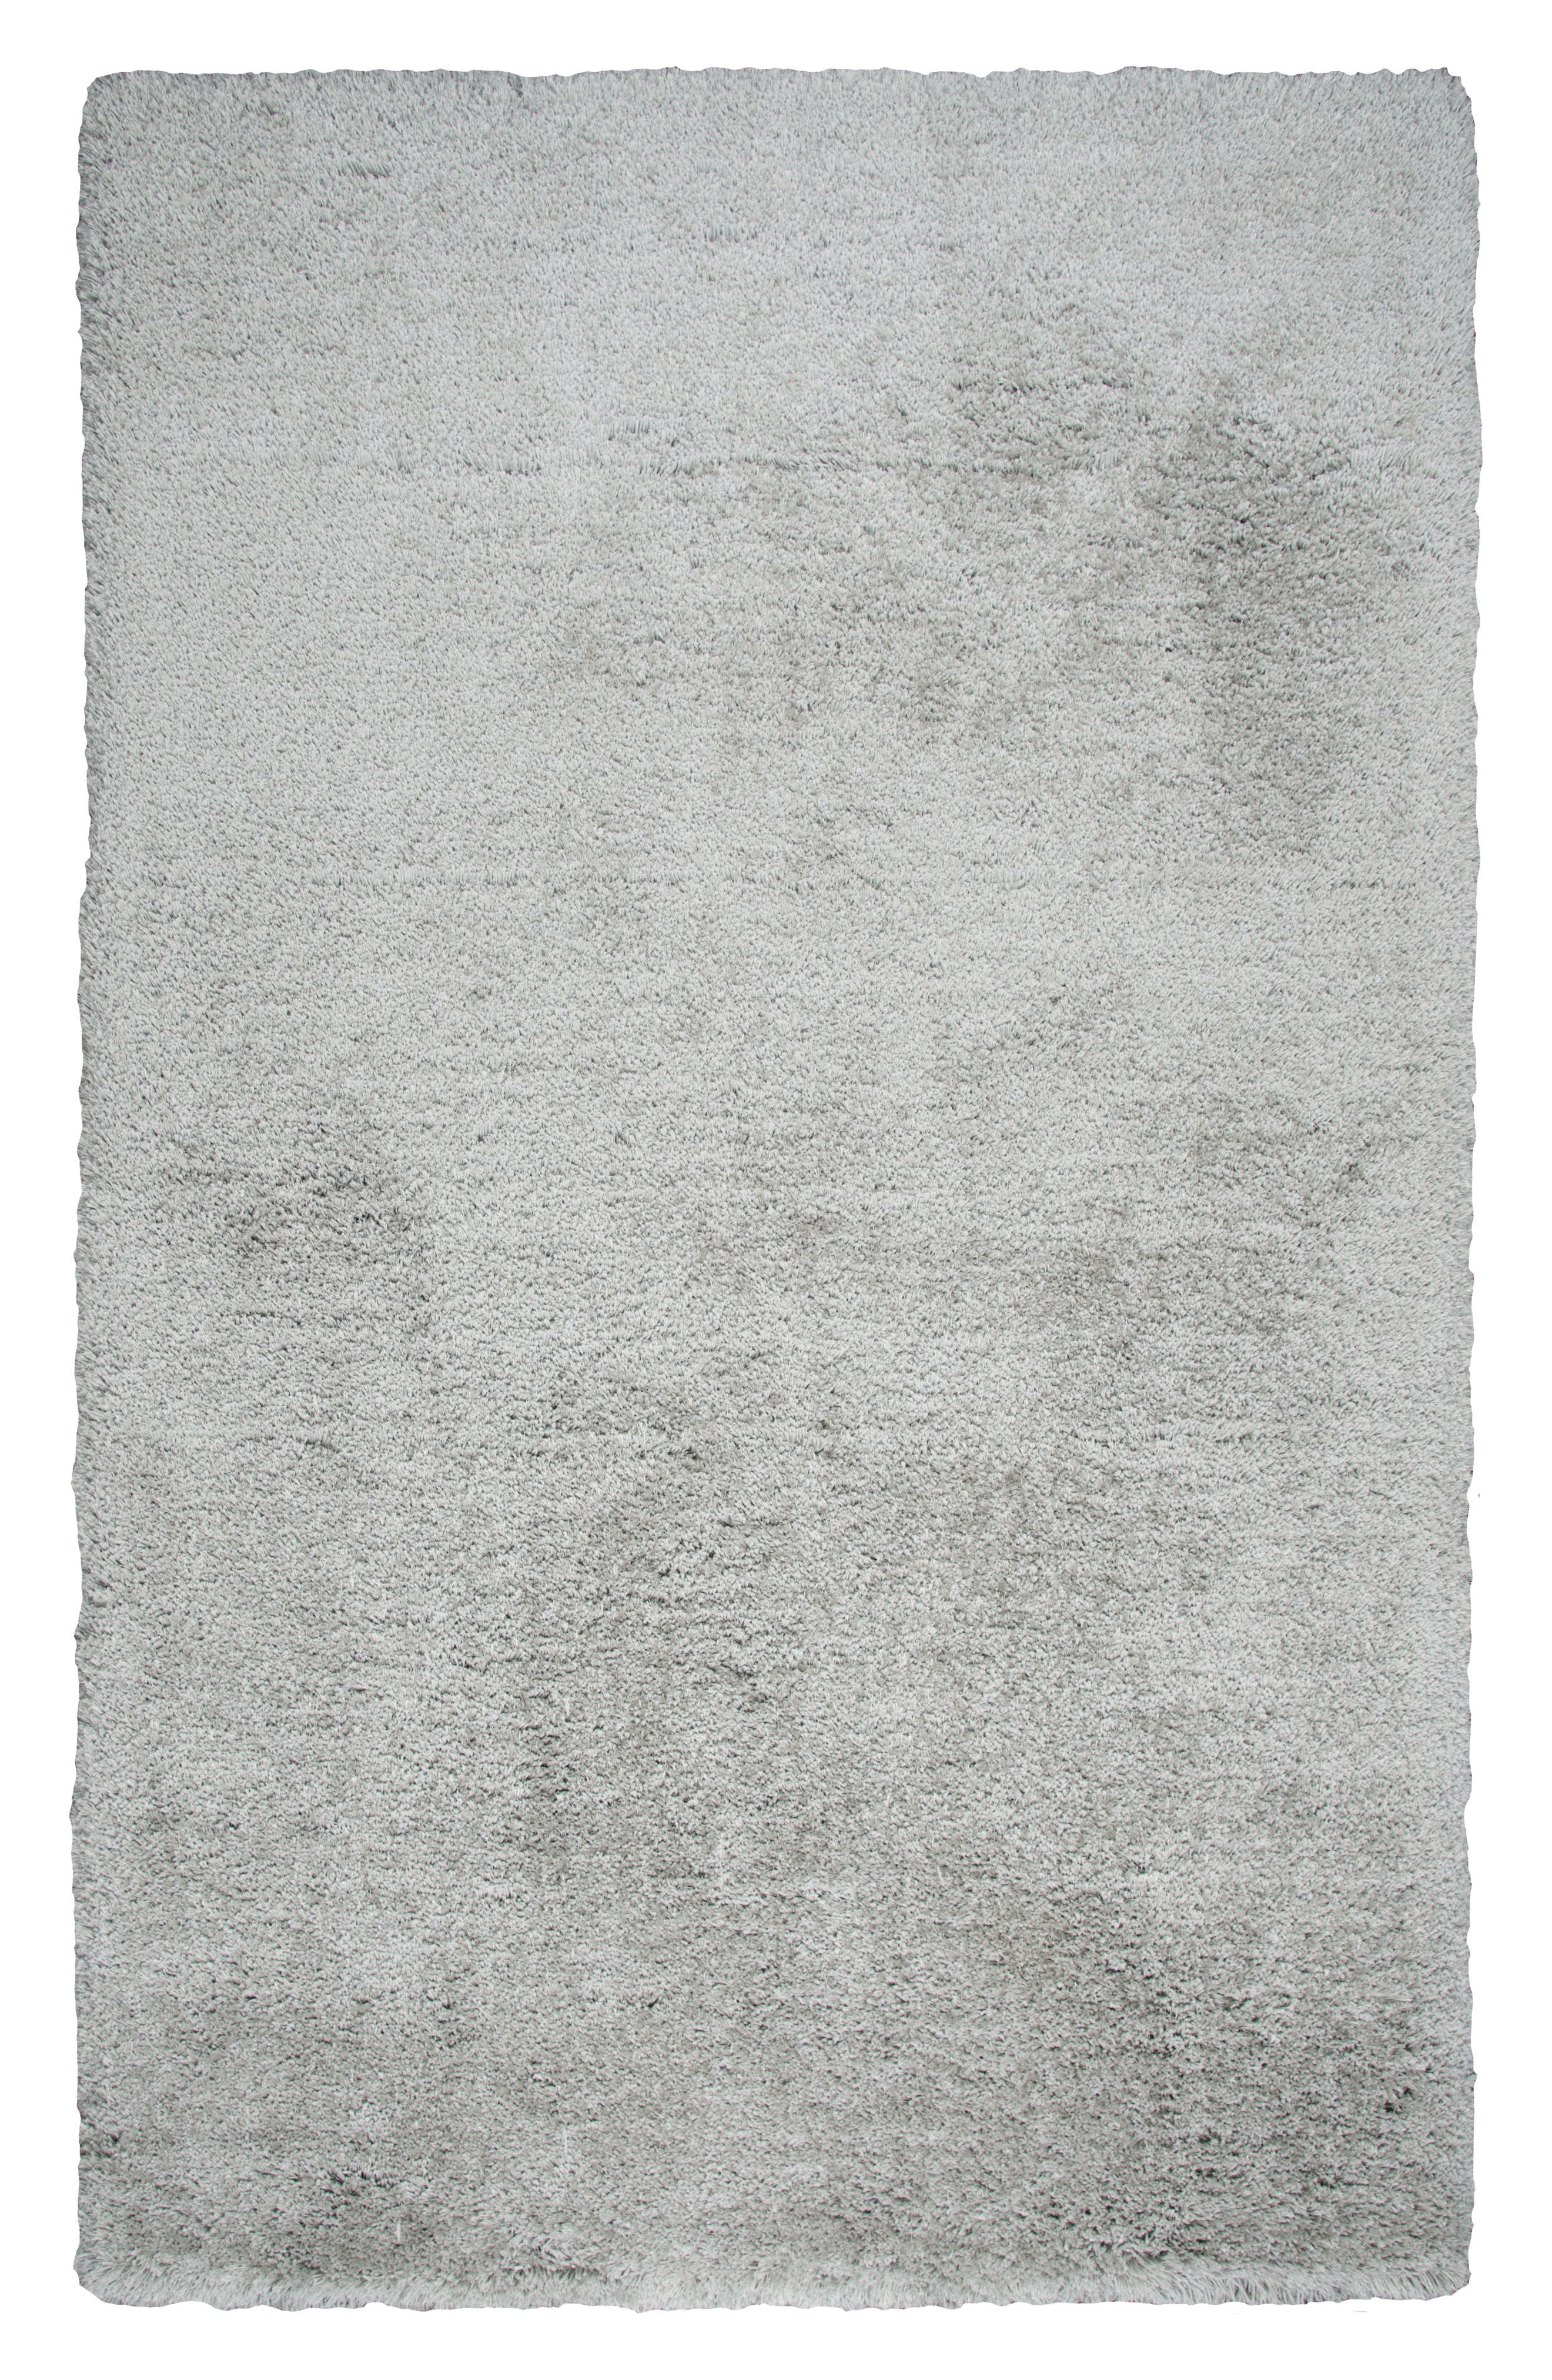 Commons Bound Rug,                             Main thumbnail 1, color,                             040